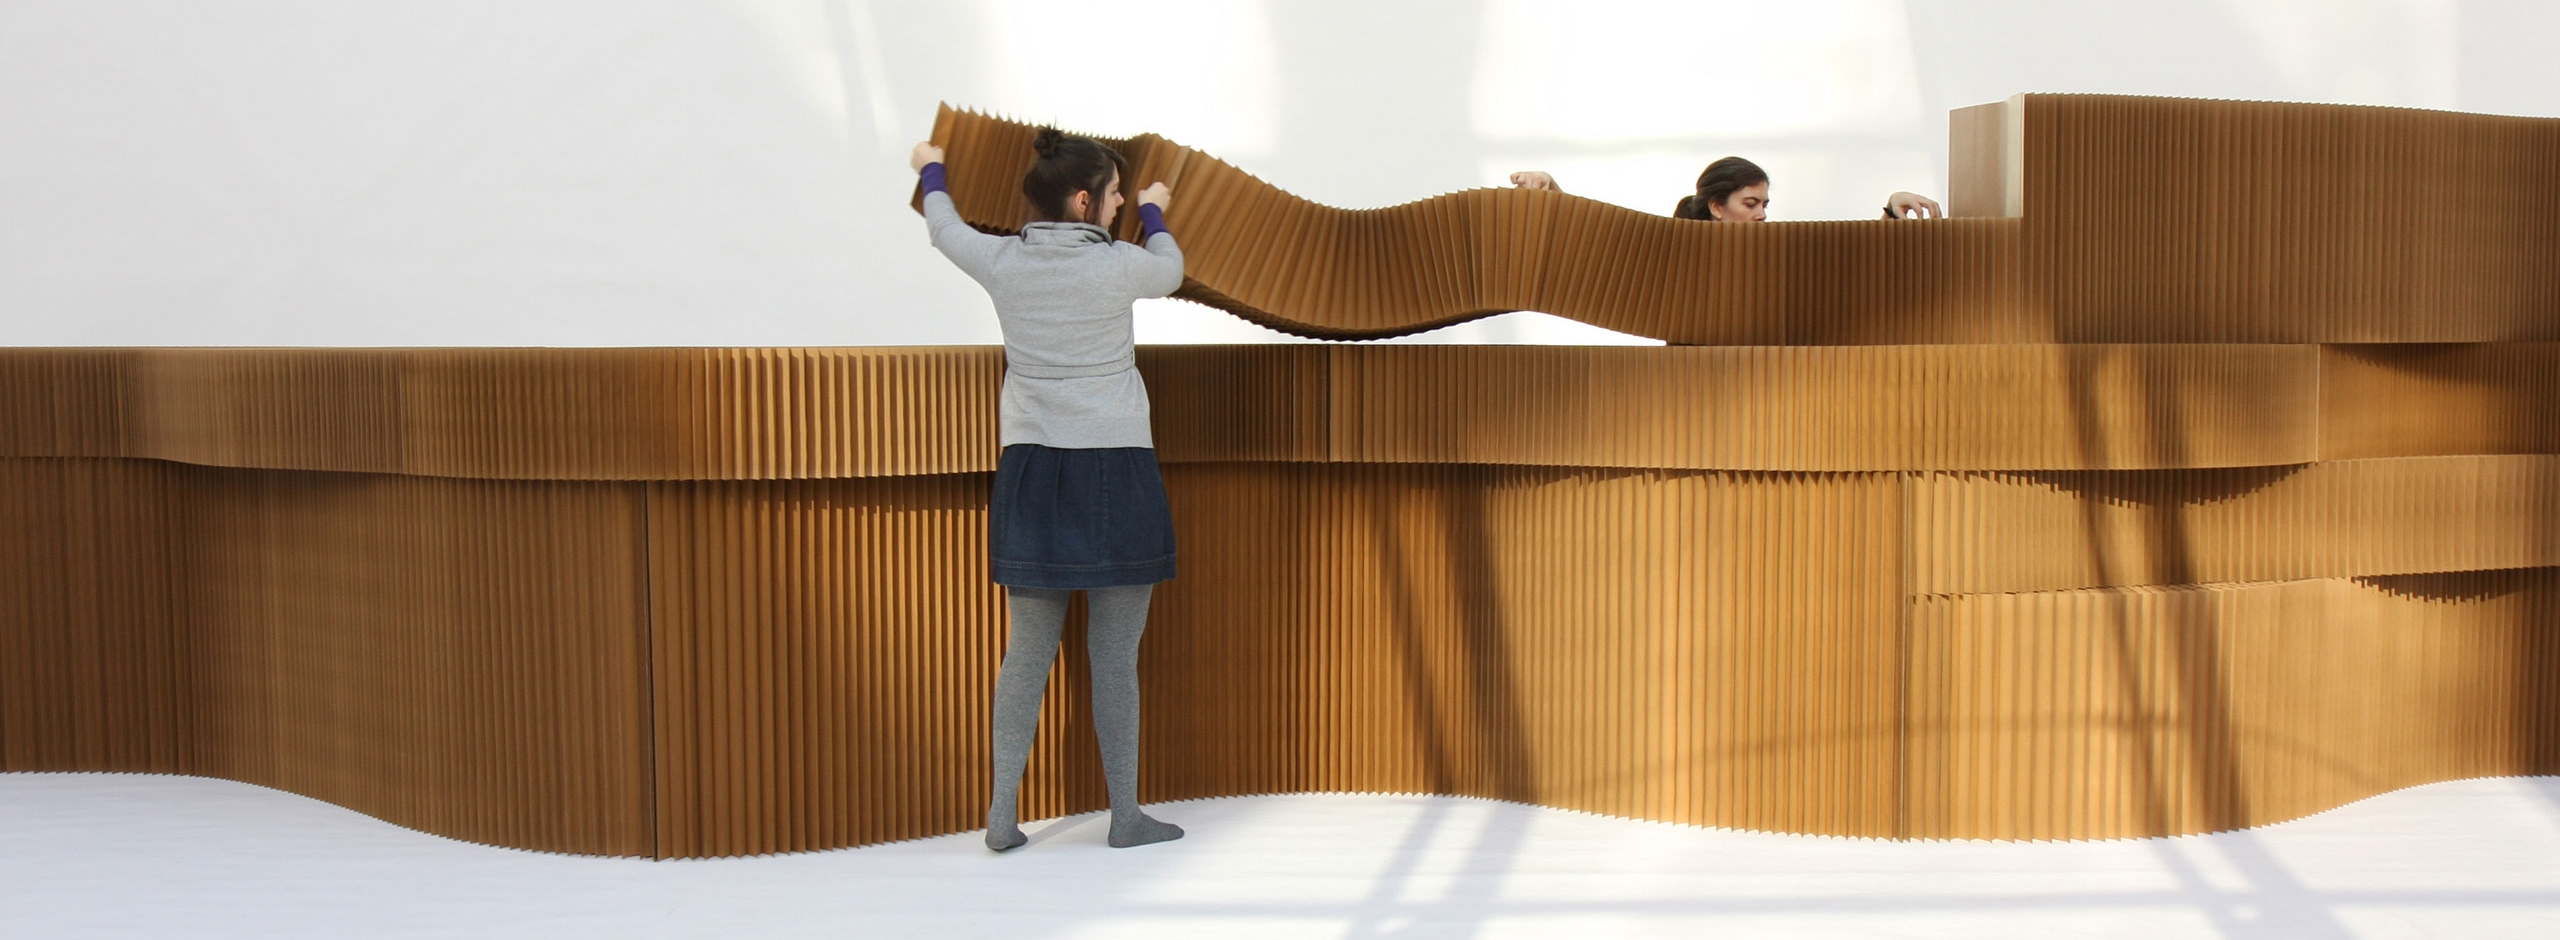 cardboard wall, flexible room divider that can be an acoustic partition, designed by molo.